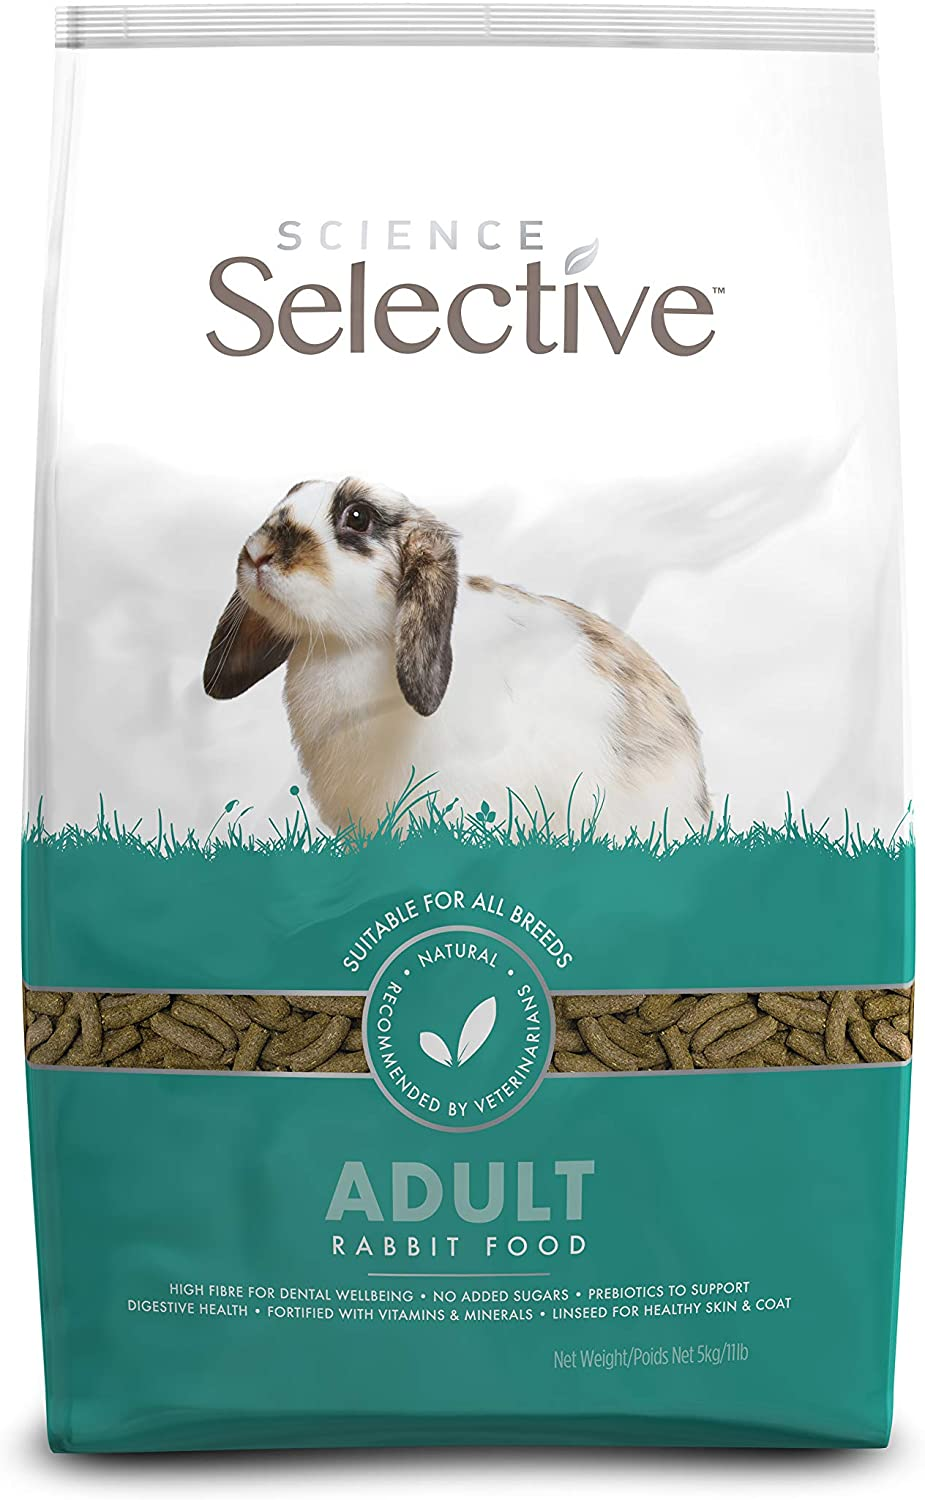 FREE SAMPLE (max one per person) Science Selective Adult Rabbit Food